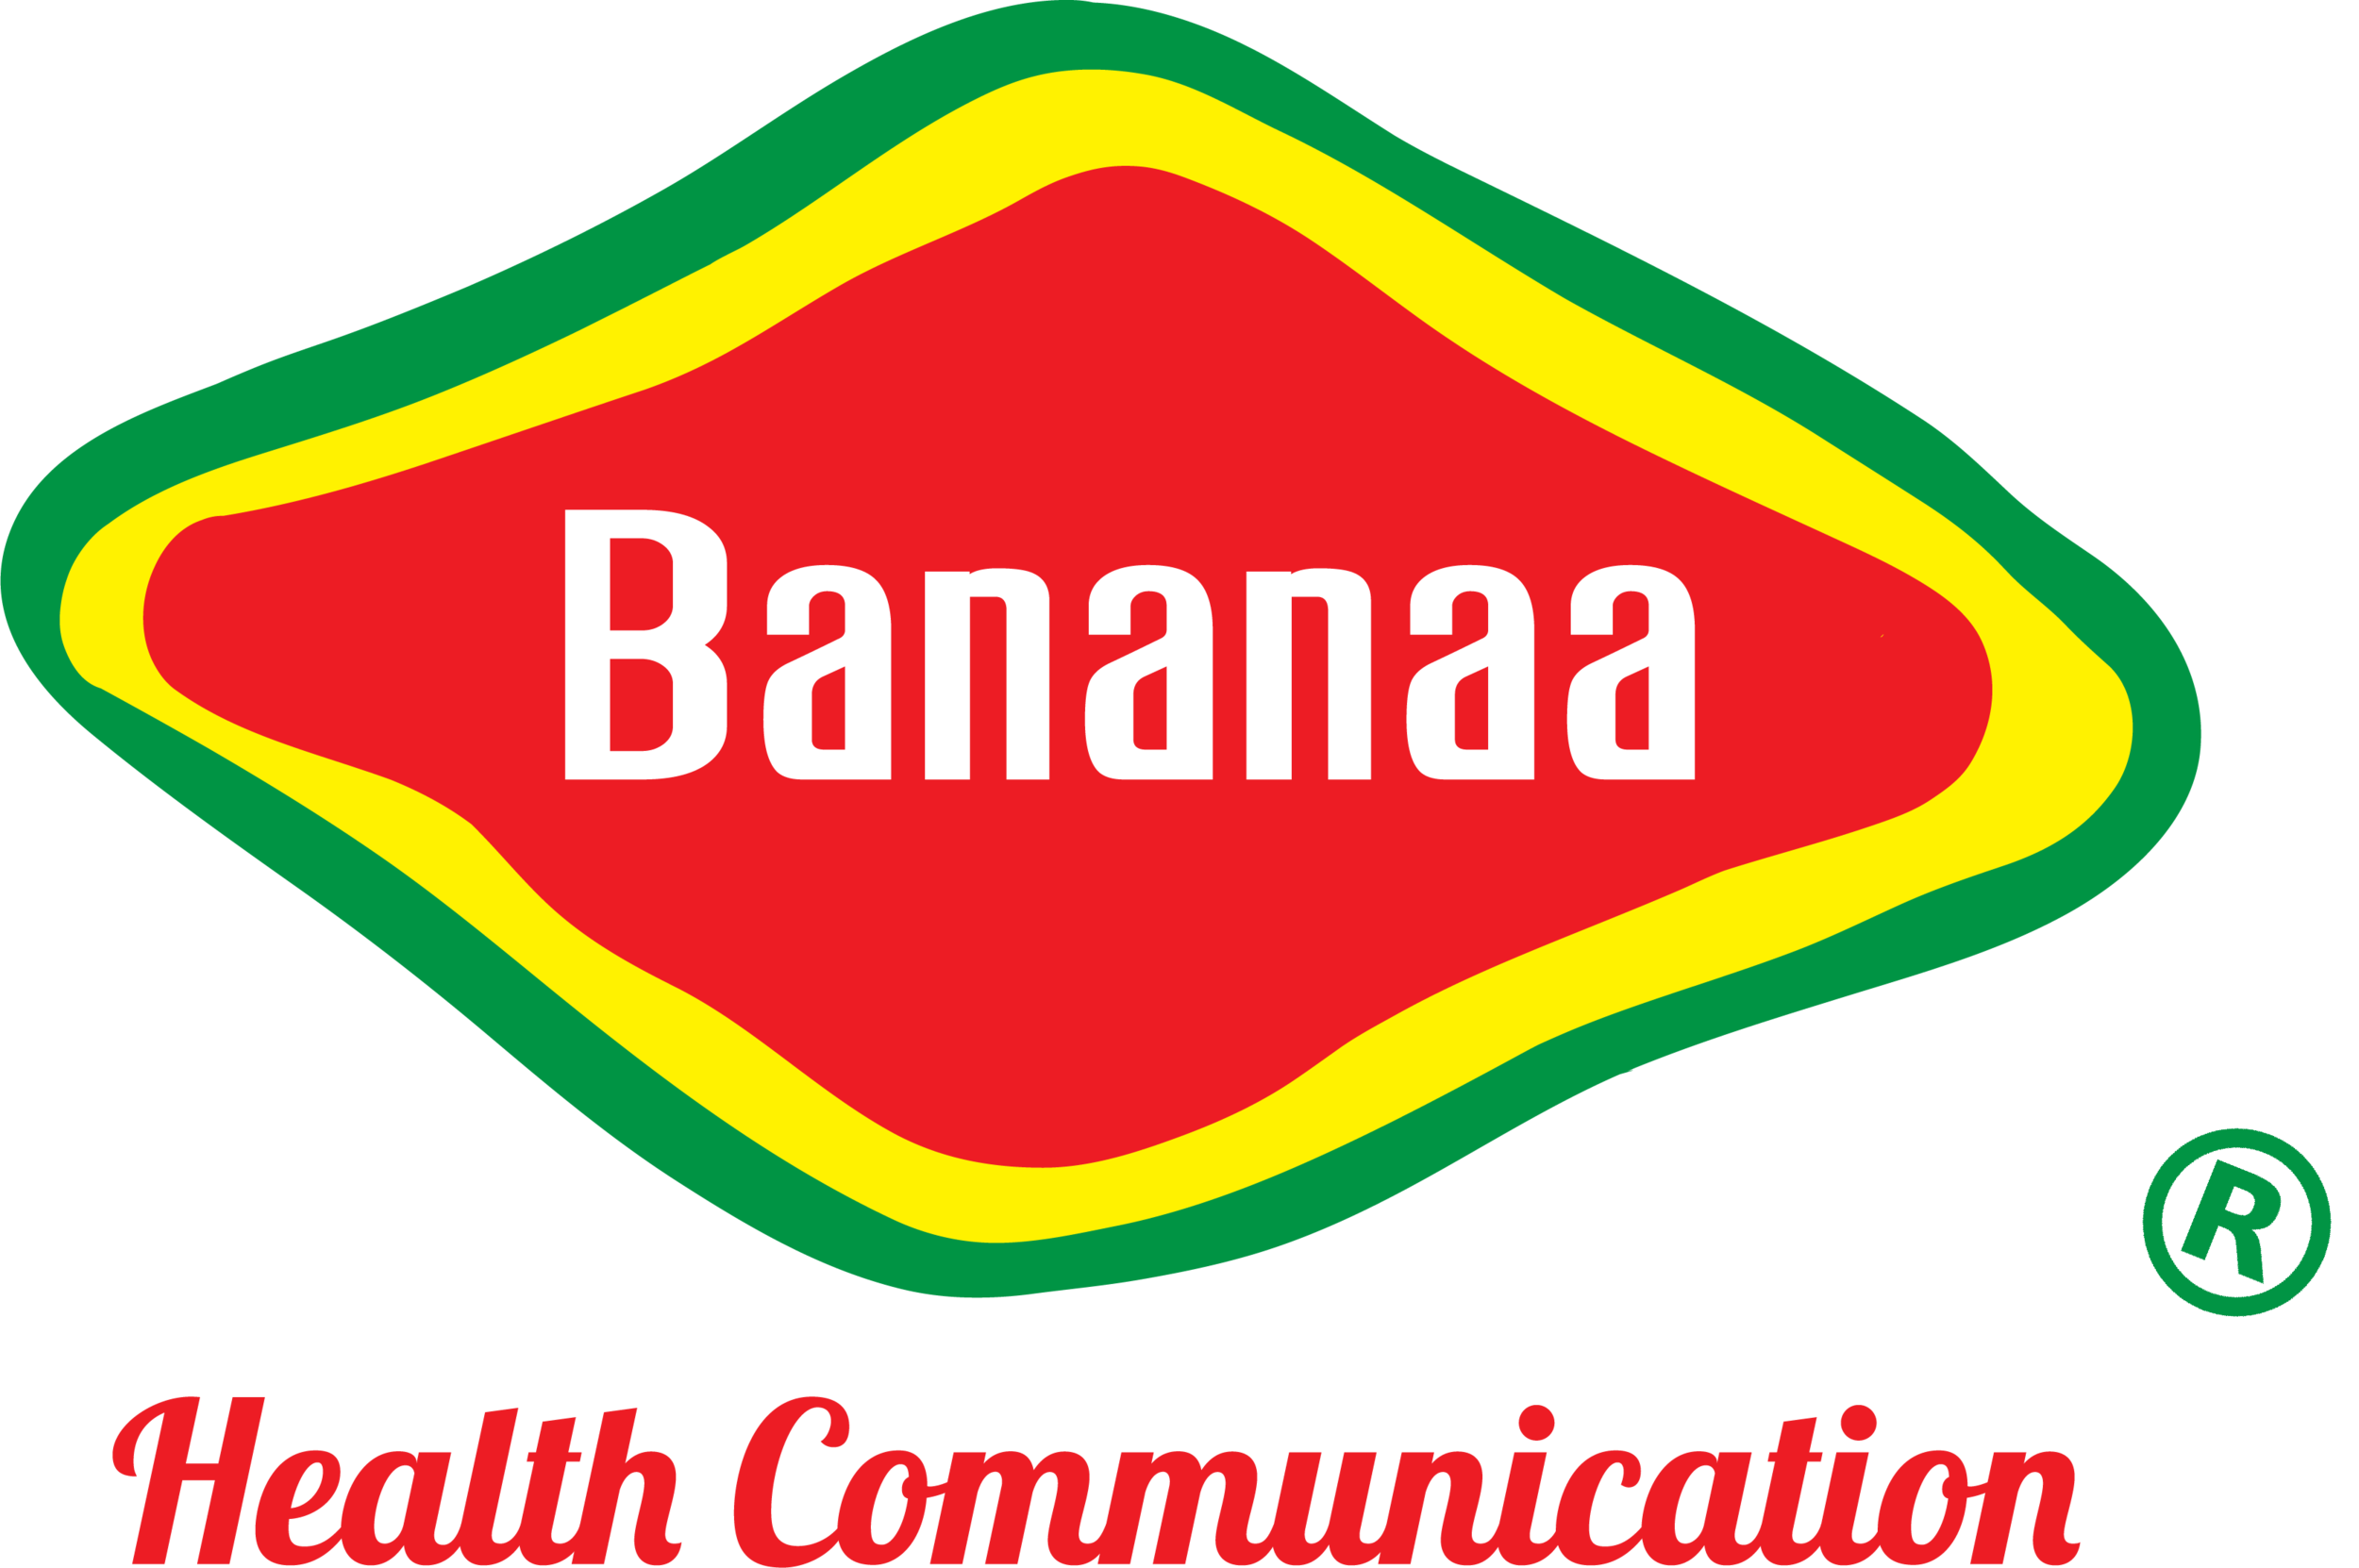 logo bananaa health 2018 clean.png